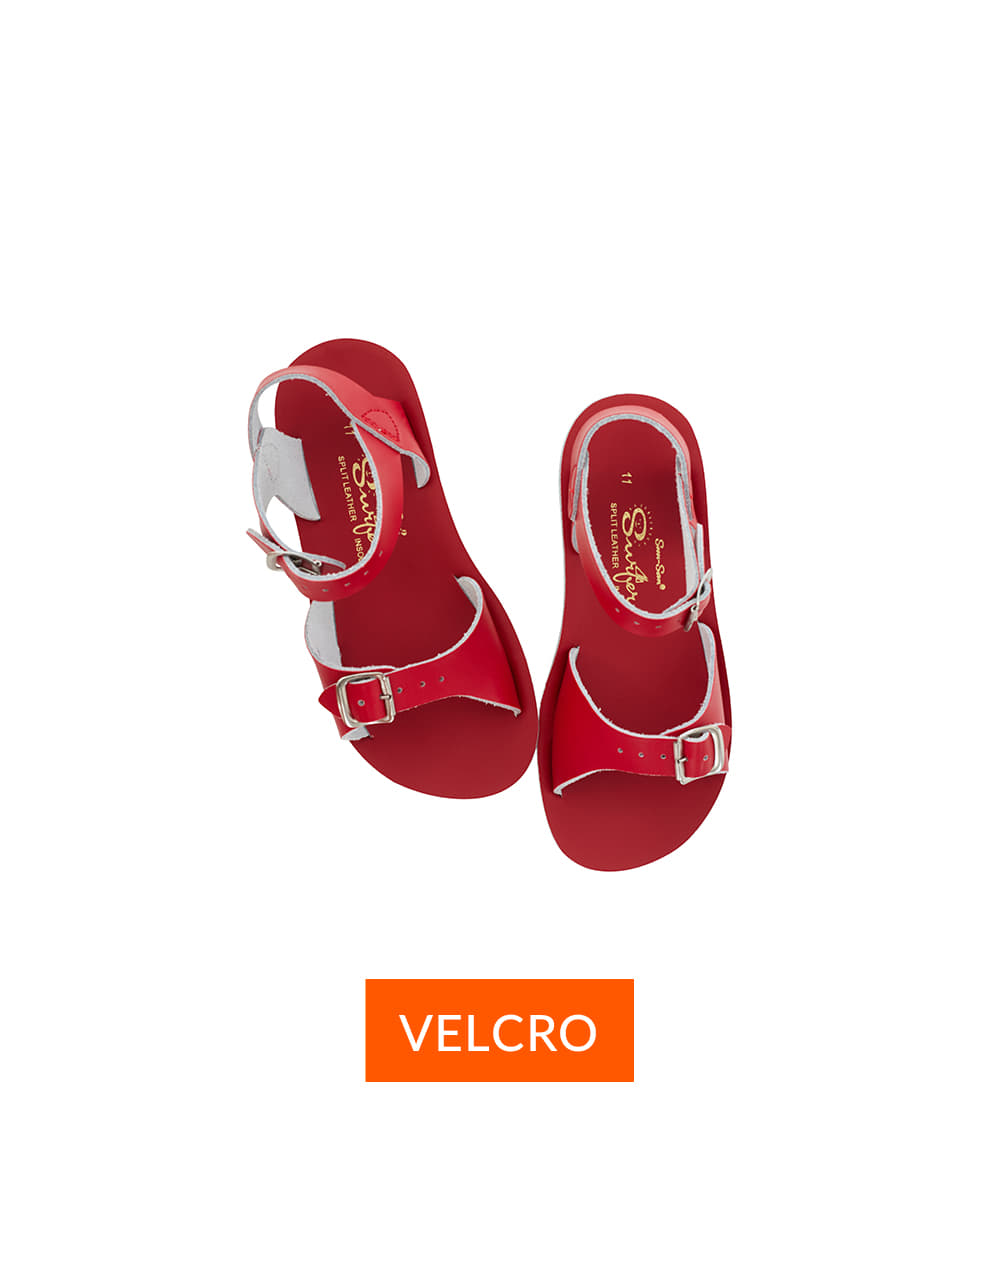 SALT-WATER SANDAL  CHILD VELCRO SURFER  Red